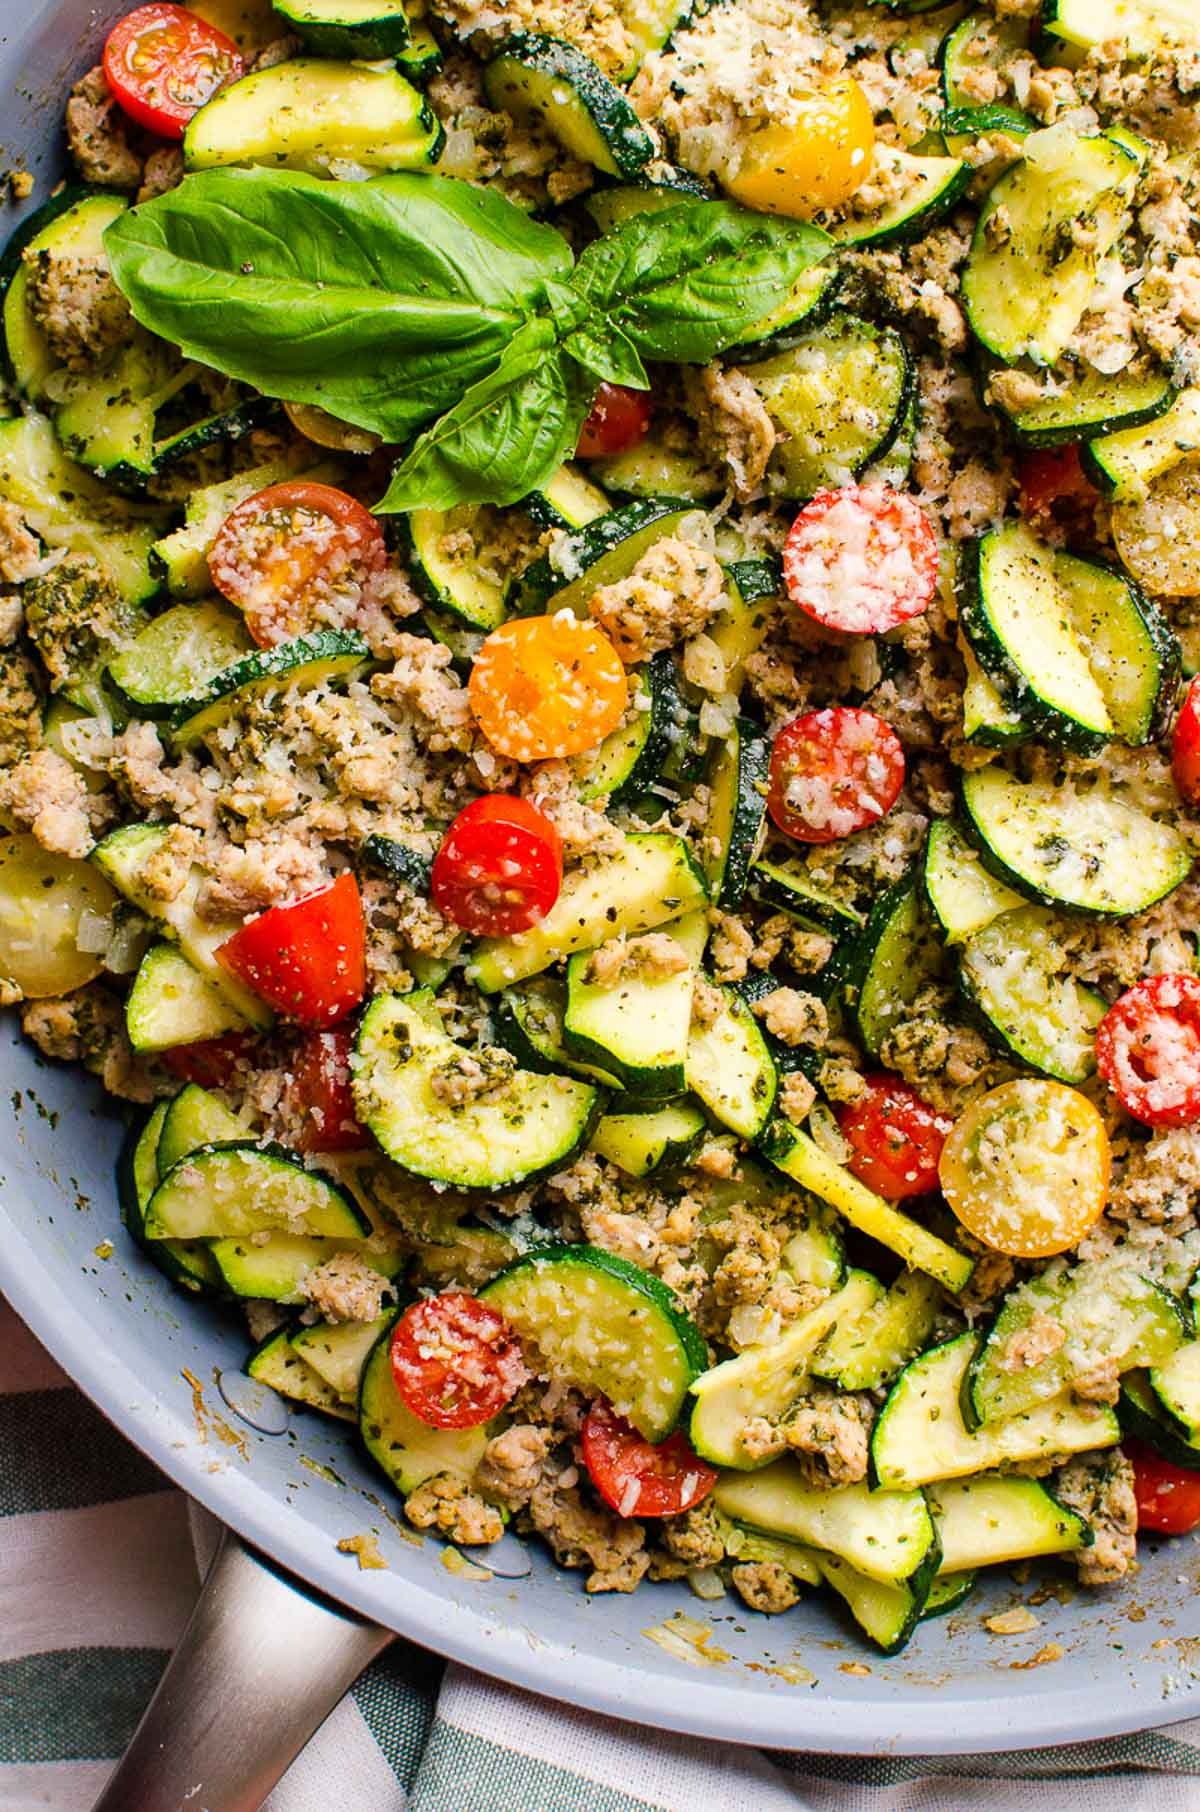 This 30 Minute Healthy Ground Turkey Zucchini Skillet with Pesto is delicious low carb one pot dinner recipe that will become your family's favourite.